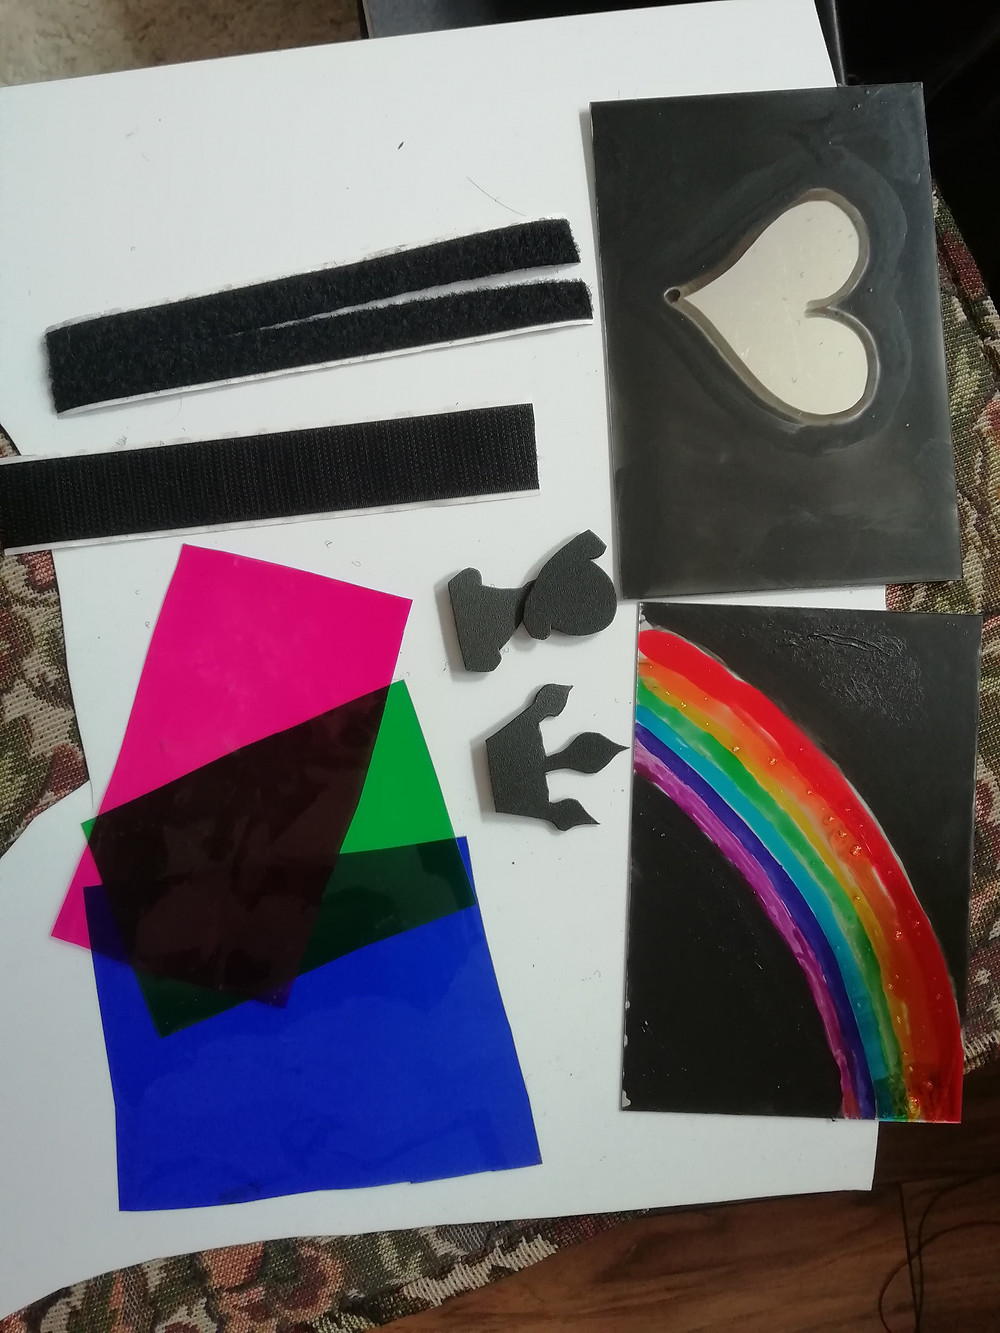 Some of the contents from the shadow kits are laid out on a table, including coloured acetate in pink, green and blue; a heart-shaped cut out and a painted rainbow.